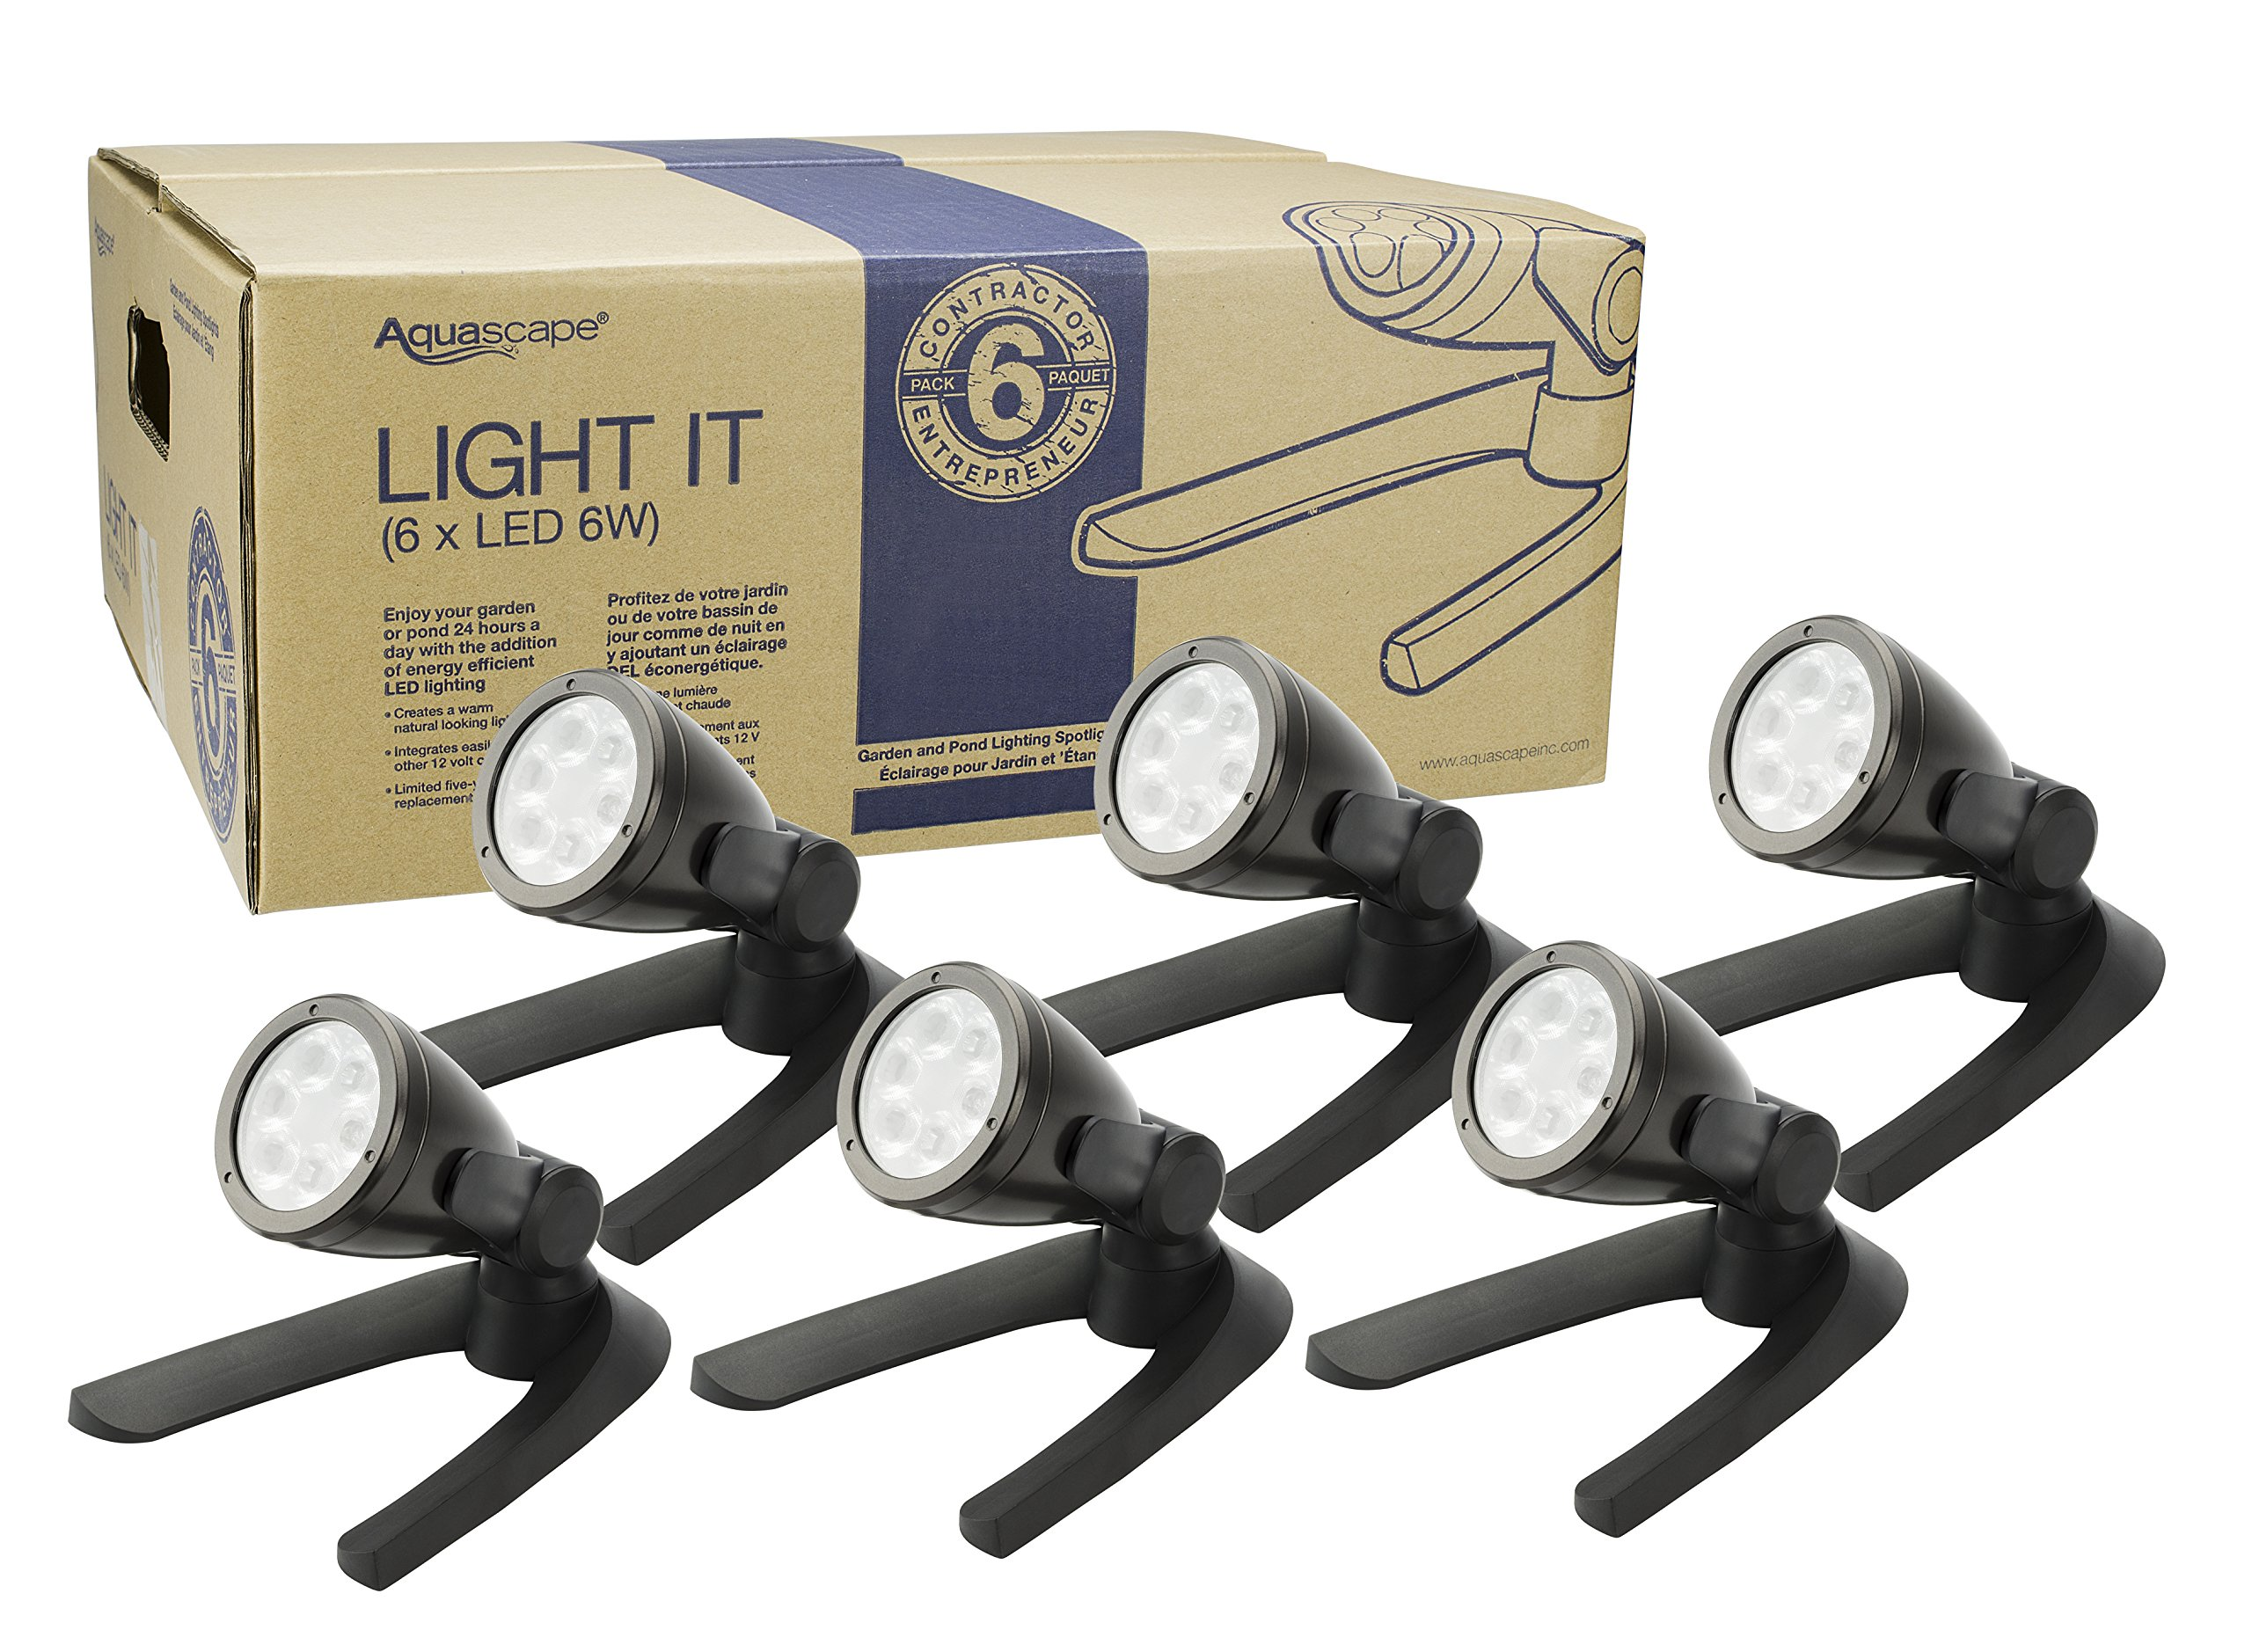 Aquascape 6W Contractor Pond and Landscape Spot Light (Pack of 6) by Aquascape